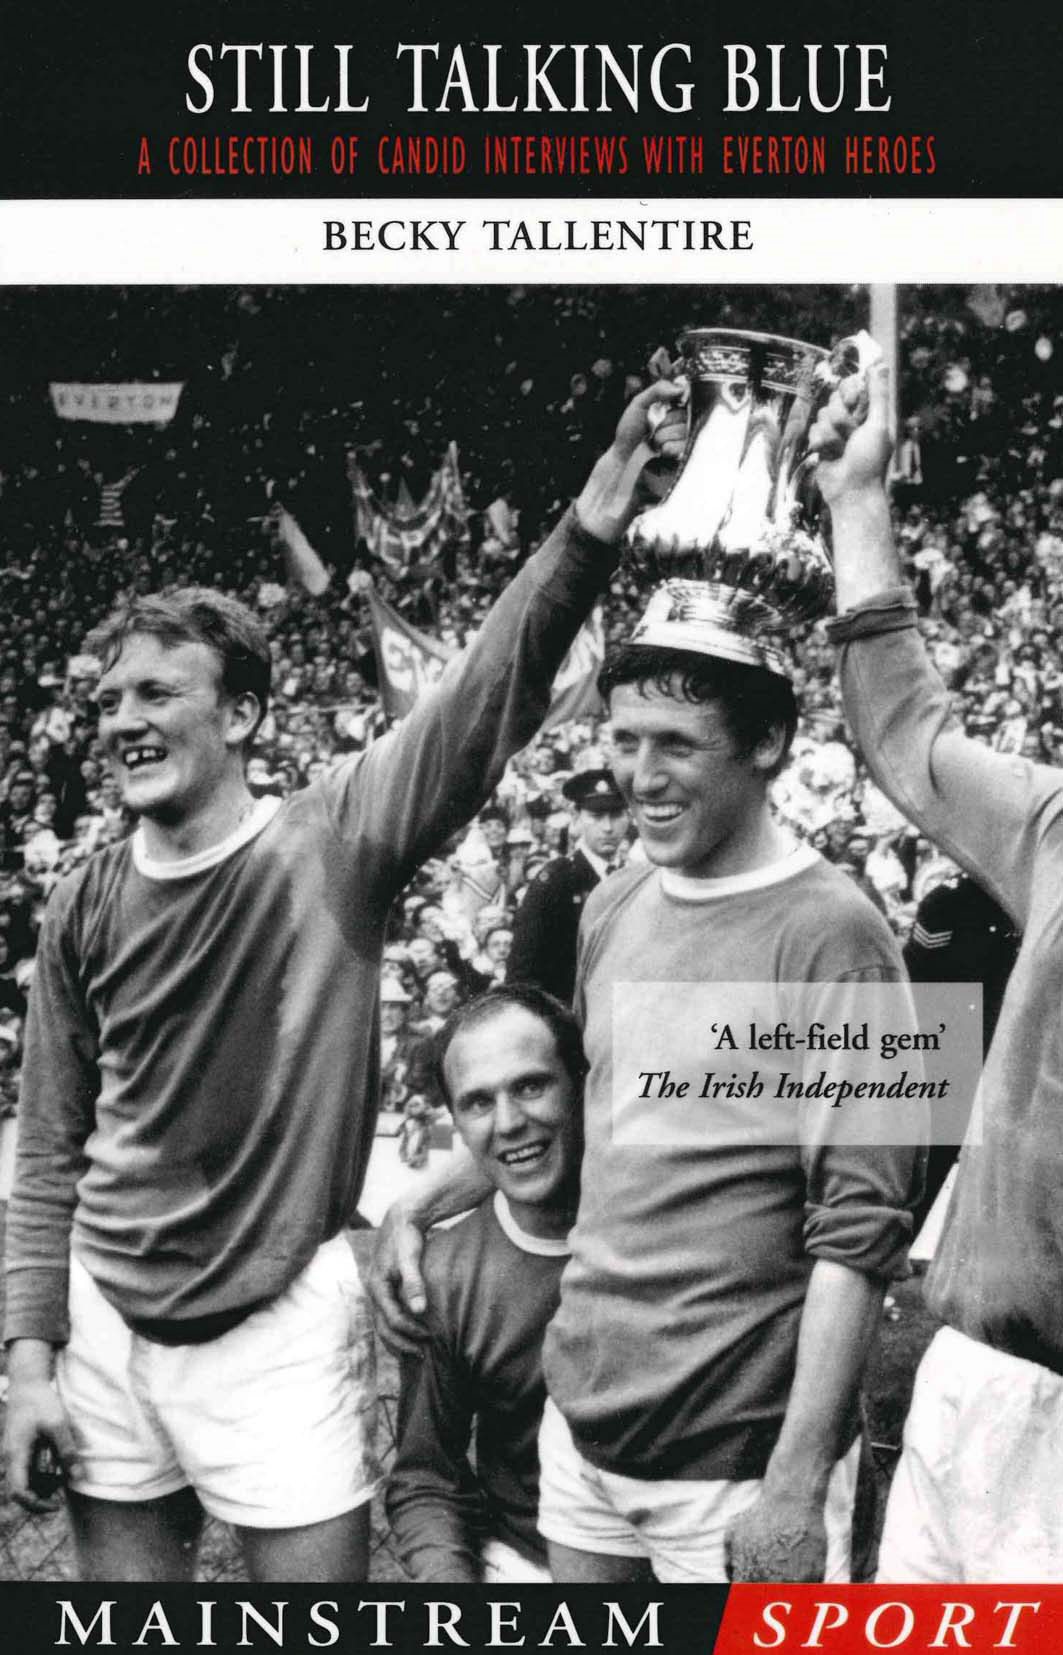 Still Talking Blue A Collection of Candid Interviews with Everton Heroes